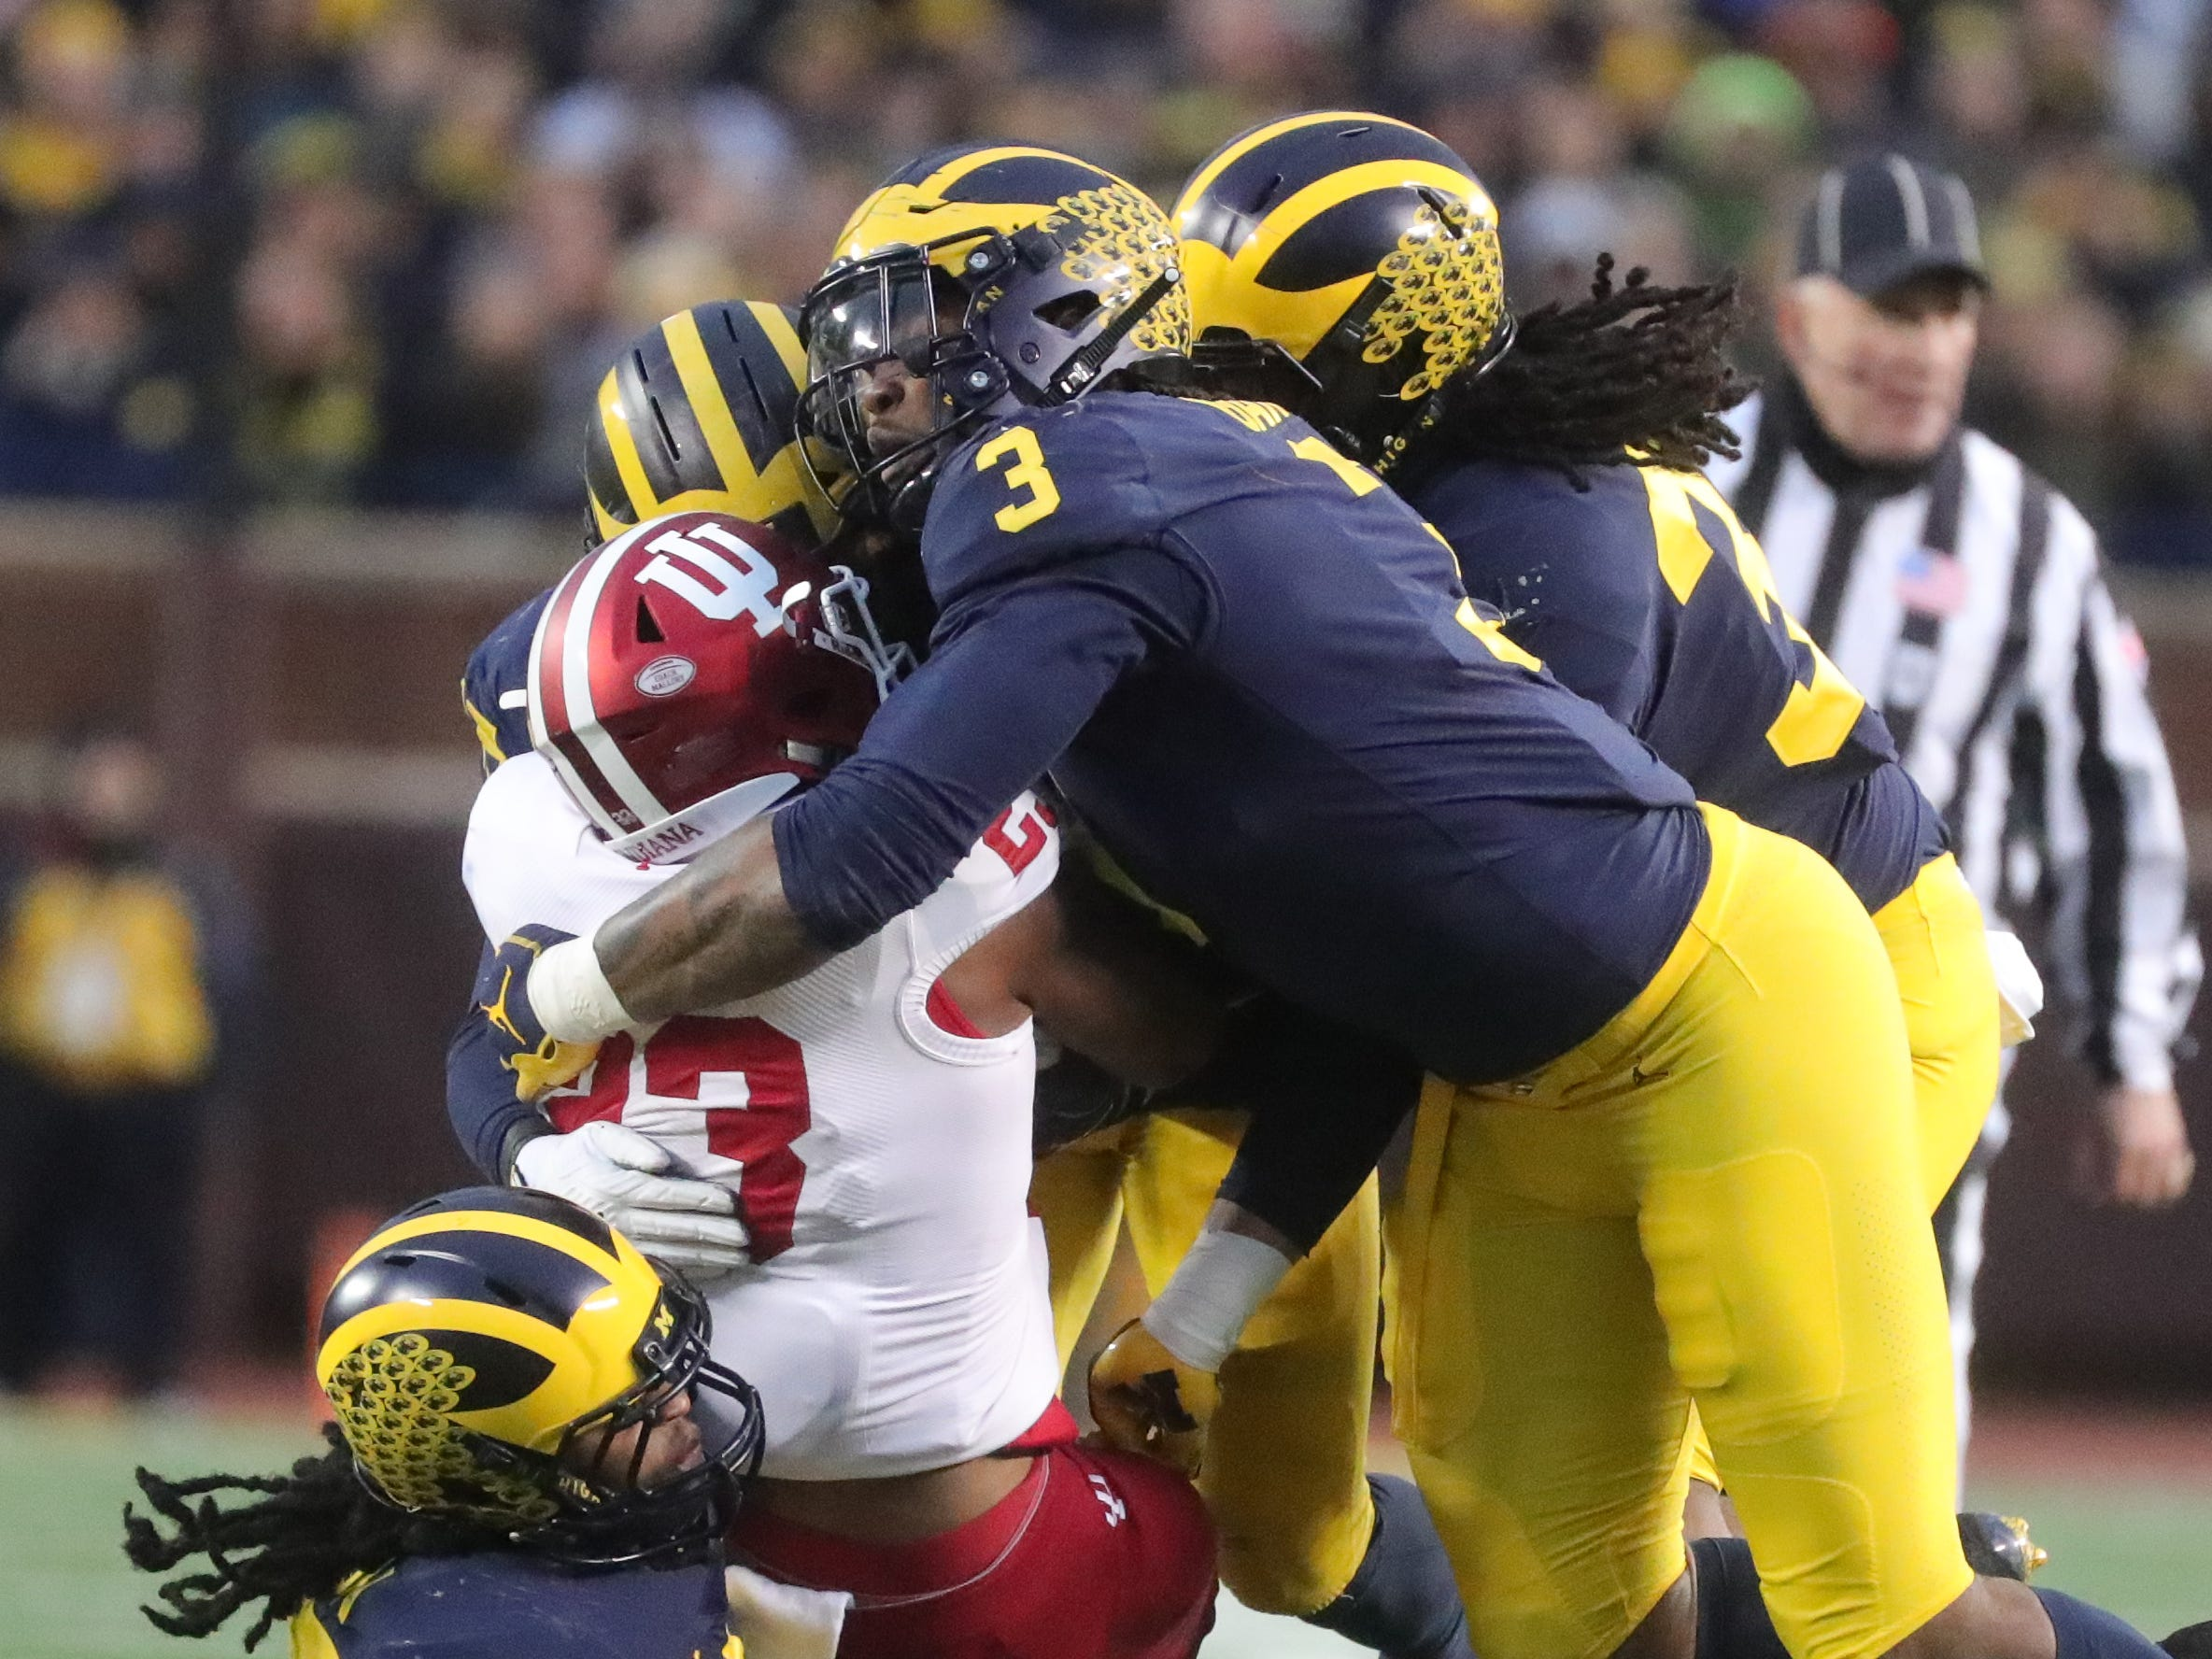 Don't fault Michigan's Rashan Gary if he decides to skip bowl game